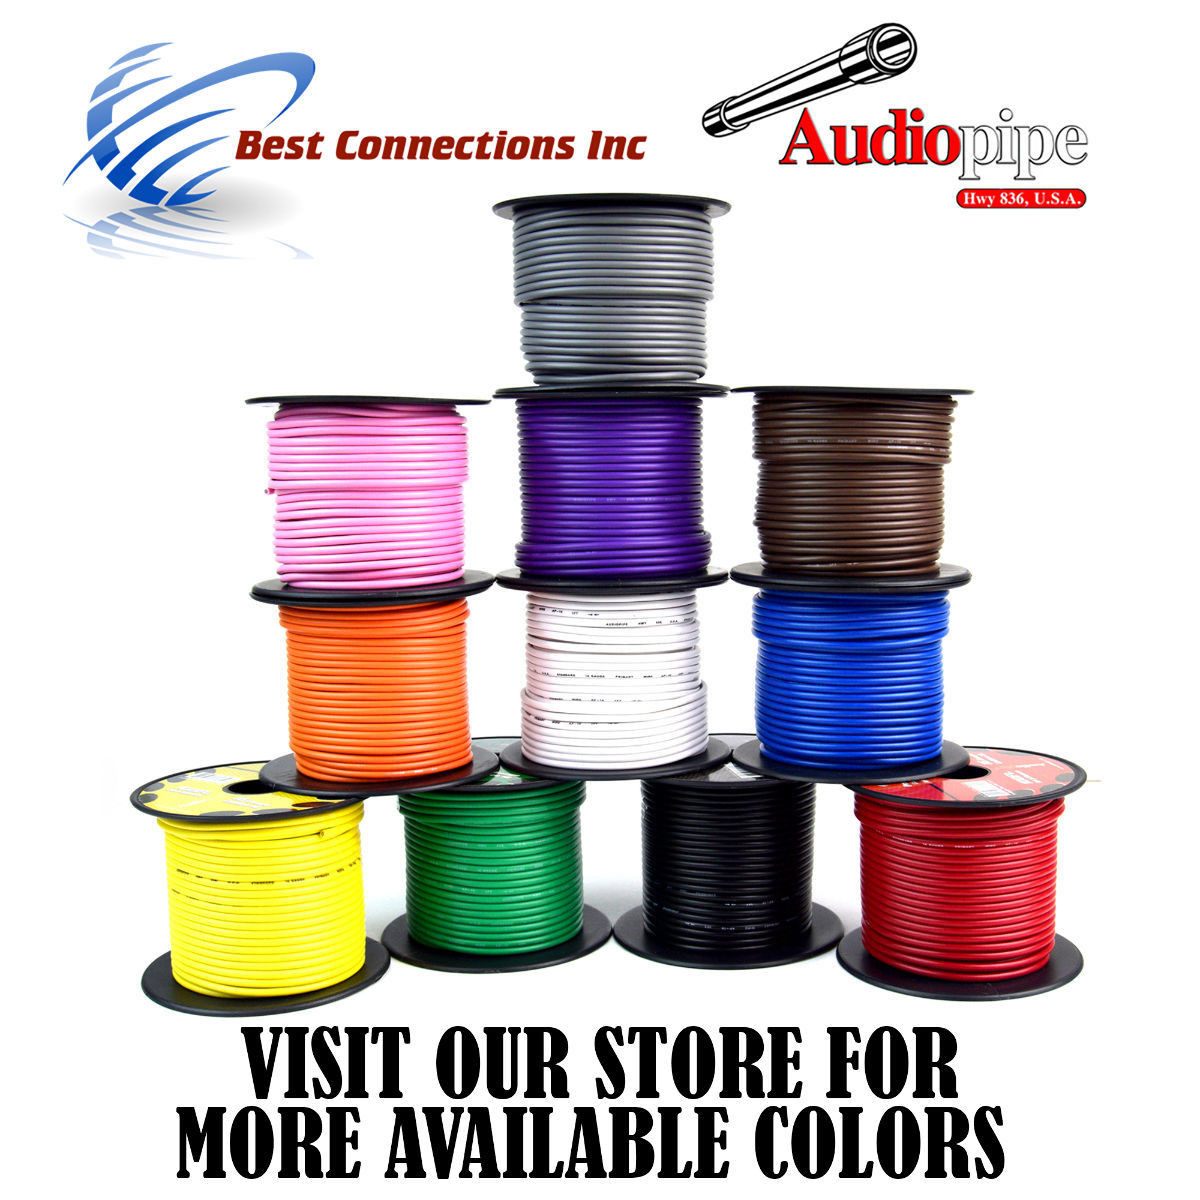 Audiopipe 16 GA 100 feet Brown Car Audio Home Primary Remote Wire LED